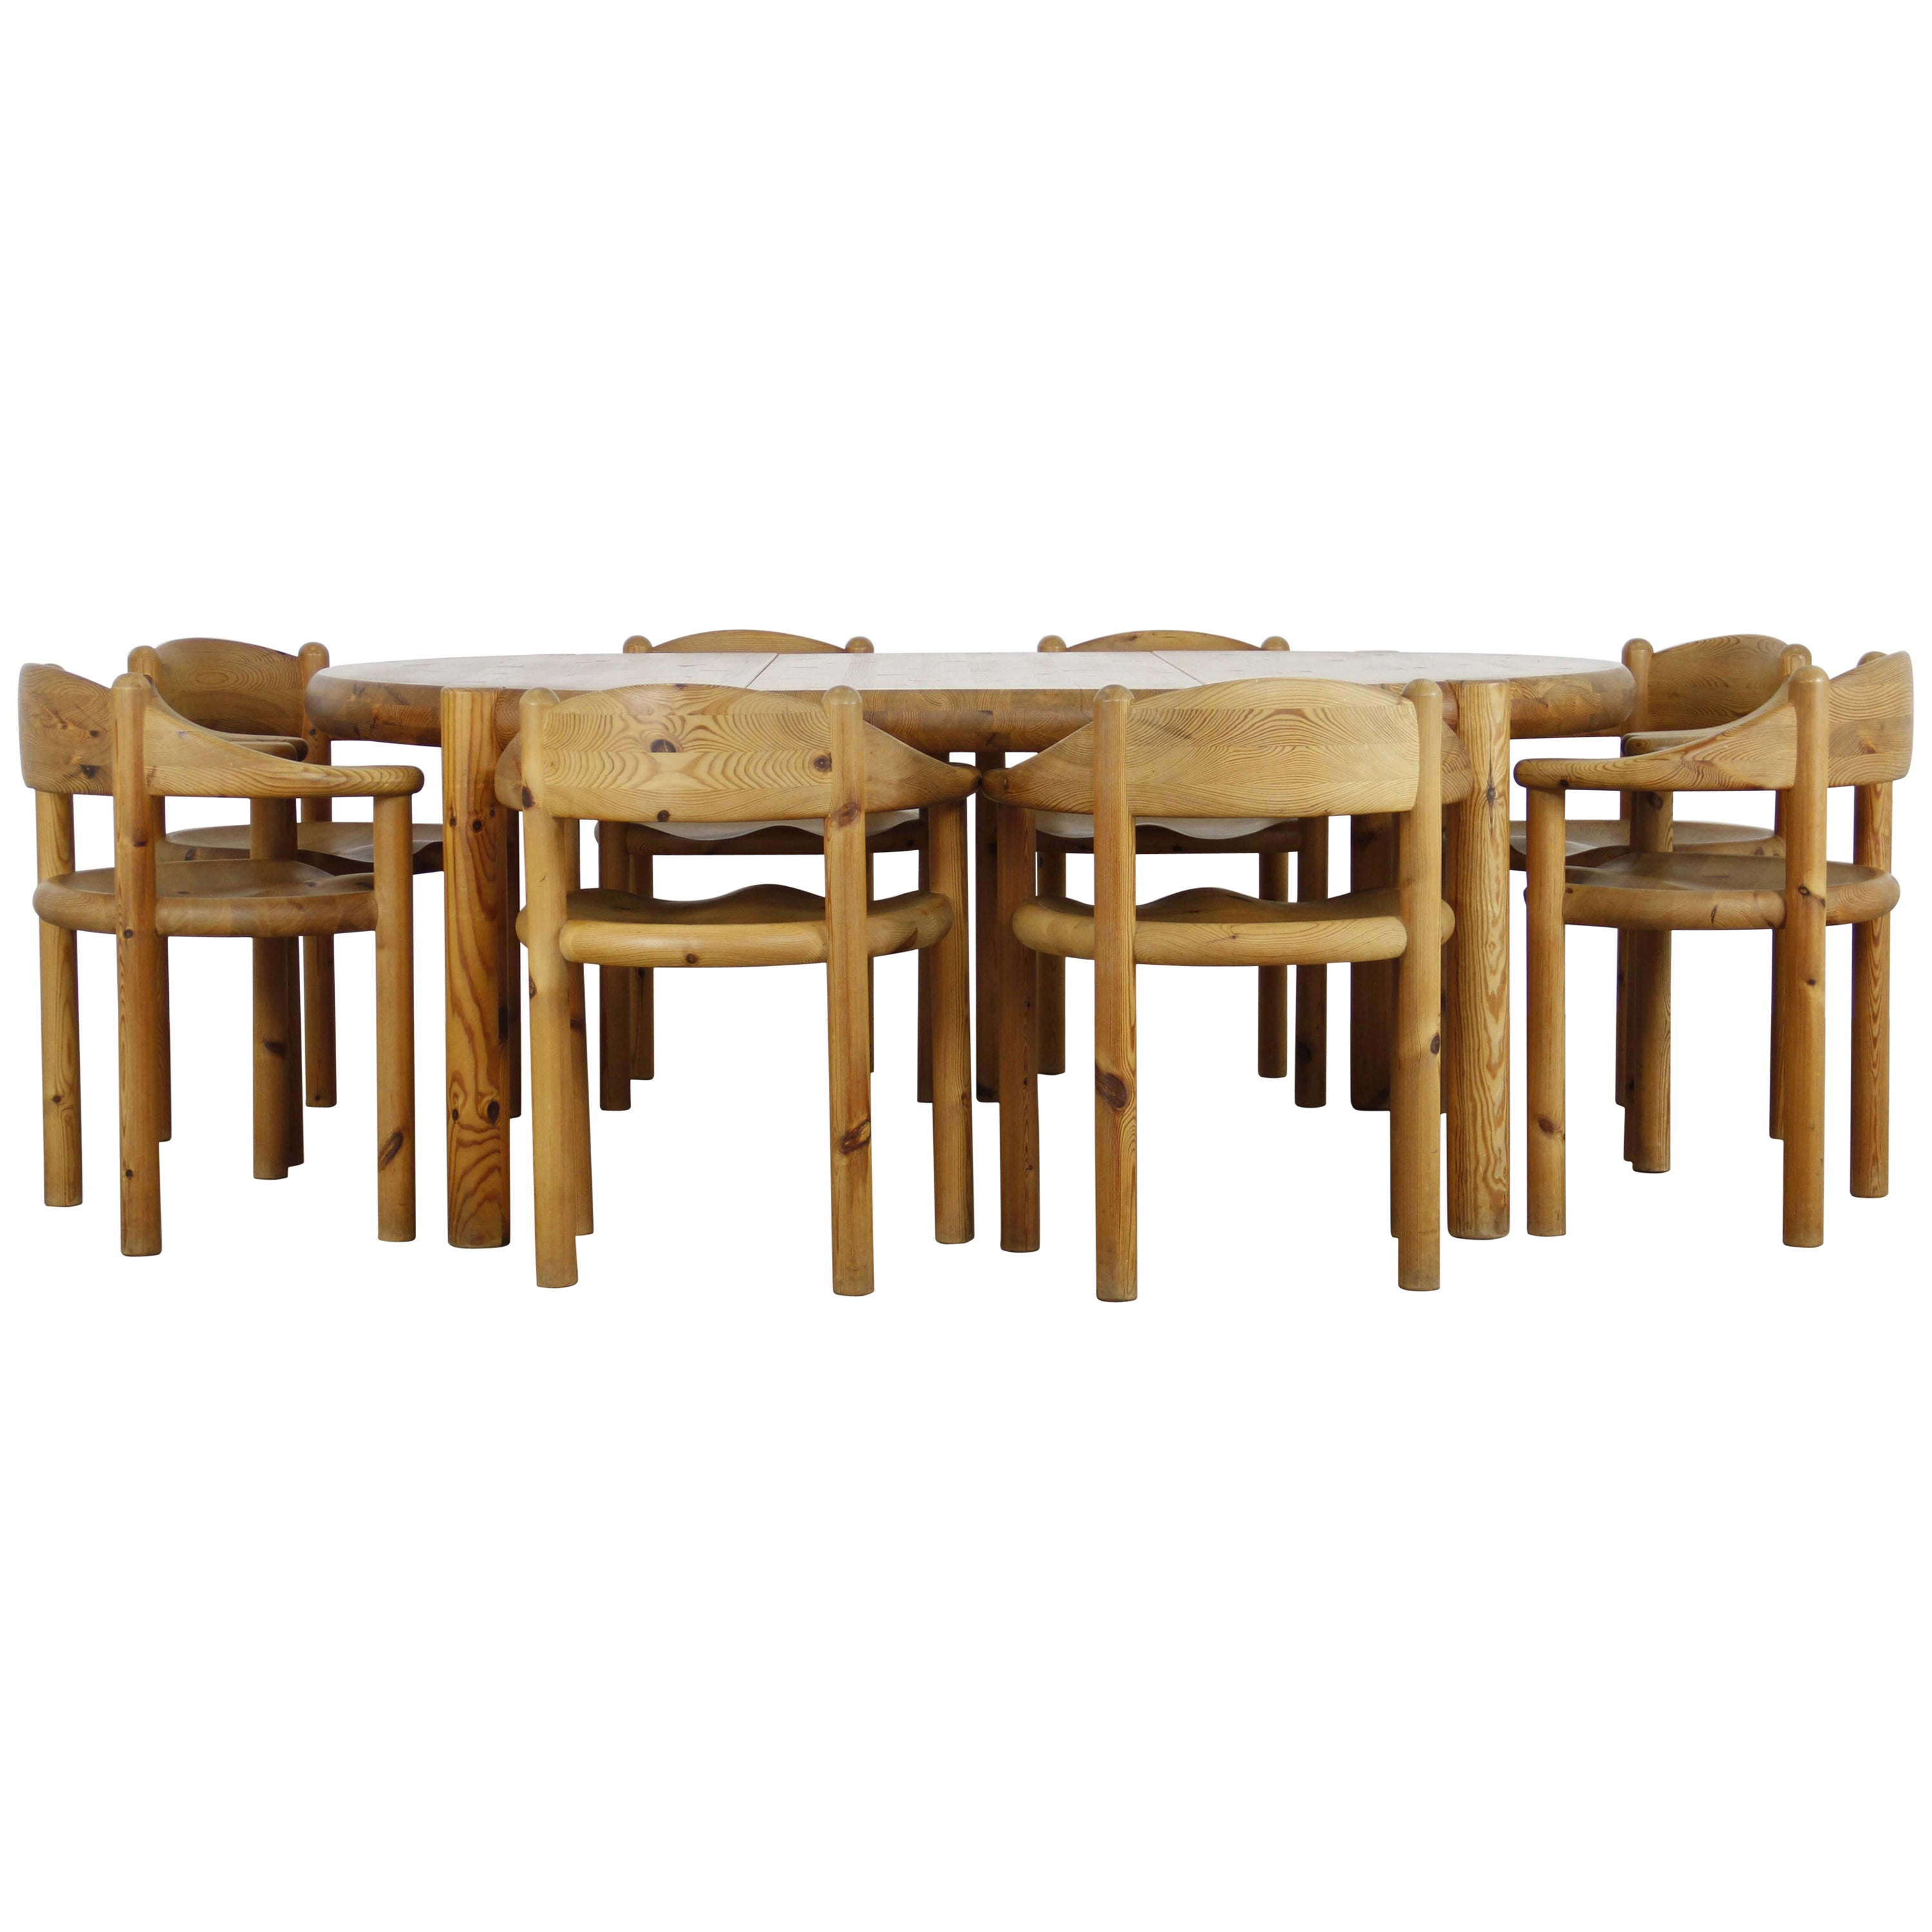 Exceptionnel 1960s Rainer Daumiller Pine Dining Set Table And 8 Chairs